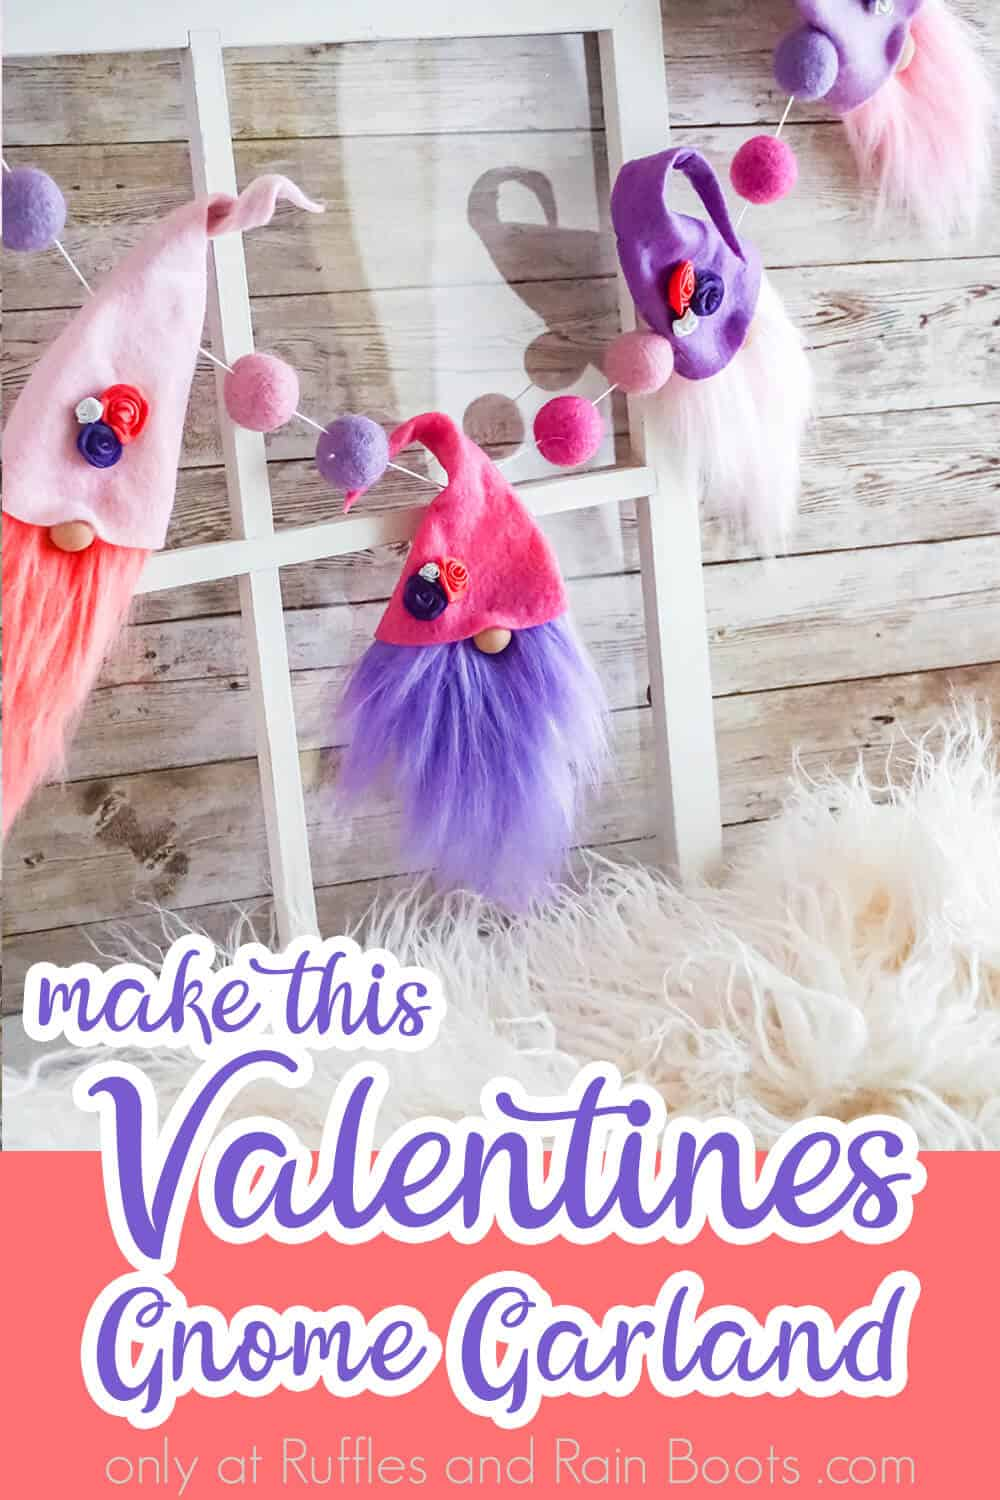 gnome valentine garland with text which reads make this valentines gnome garland